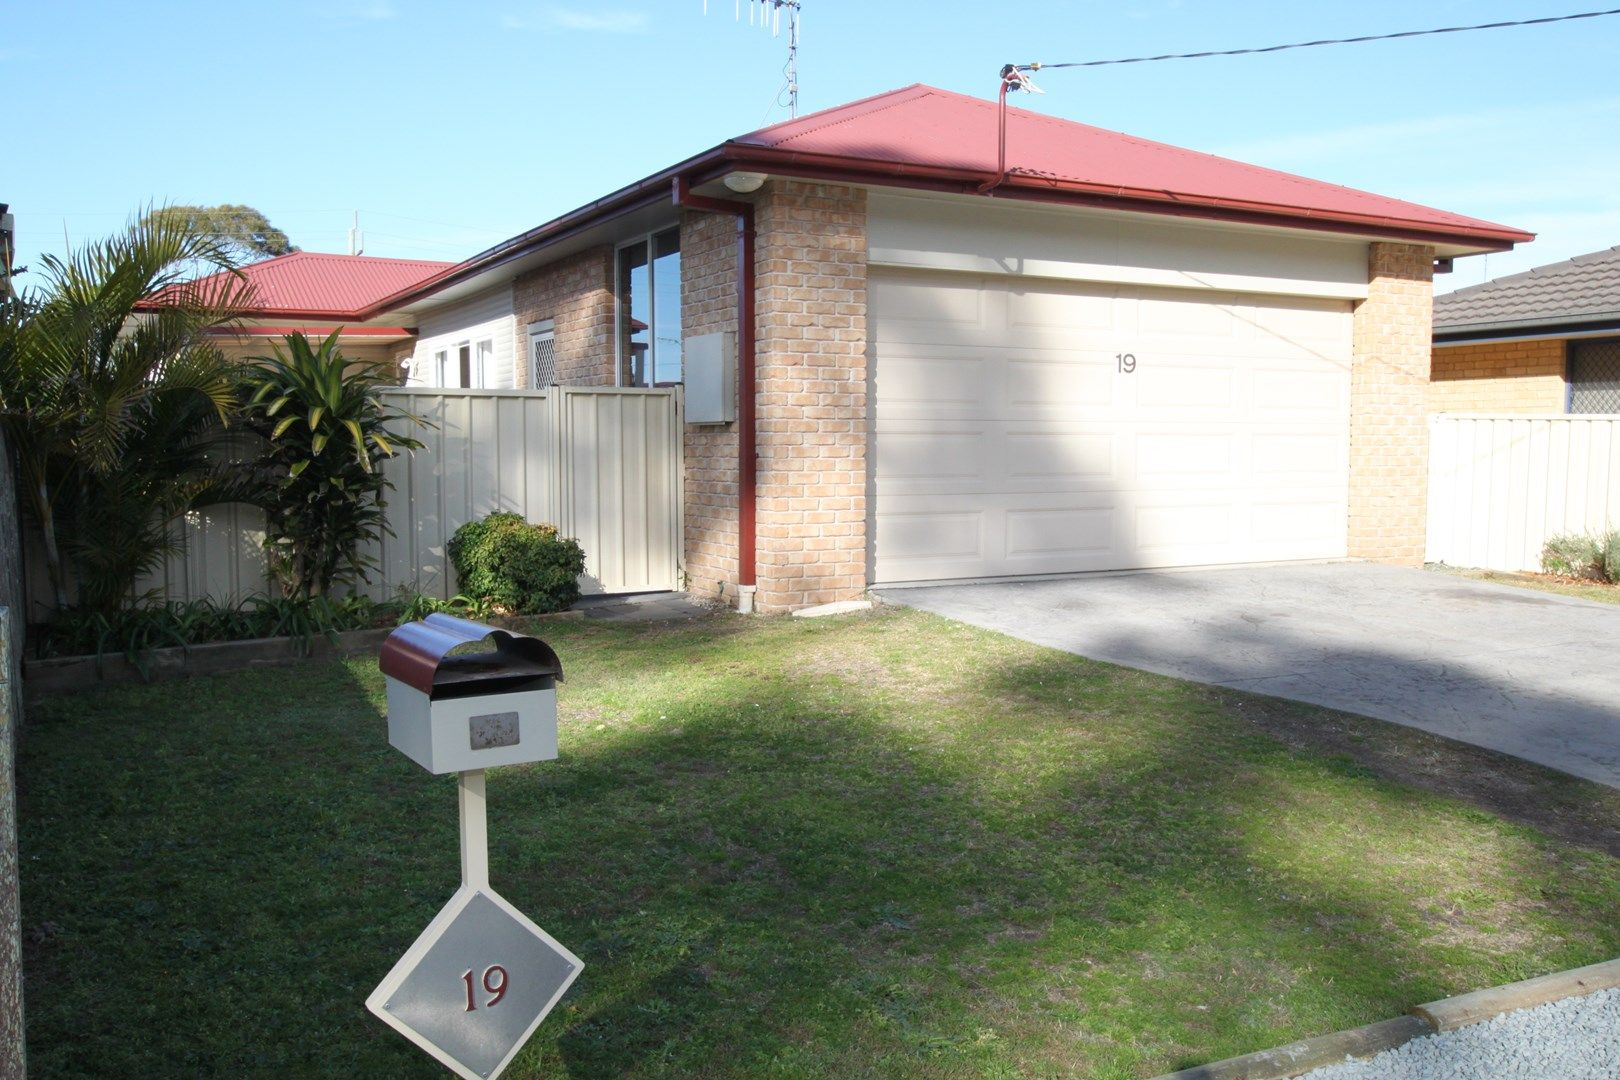 19 Tuncurry Lane, Tuncurry NSW 2428, Image 0